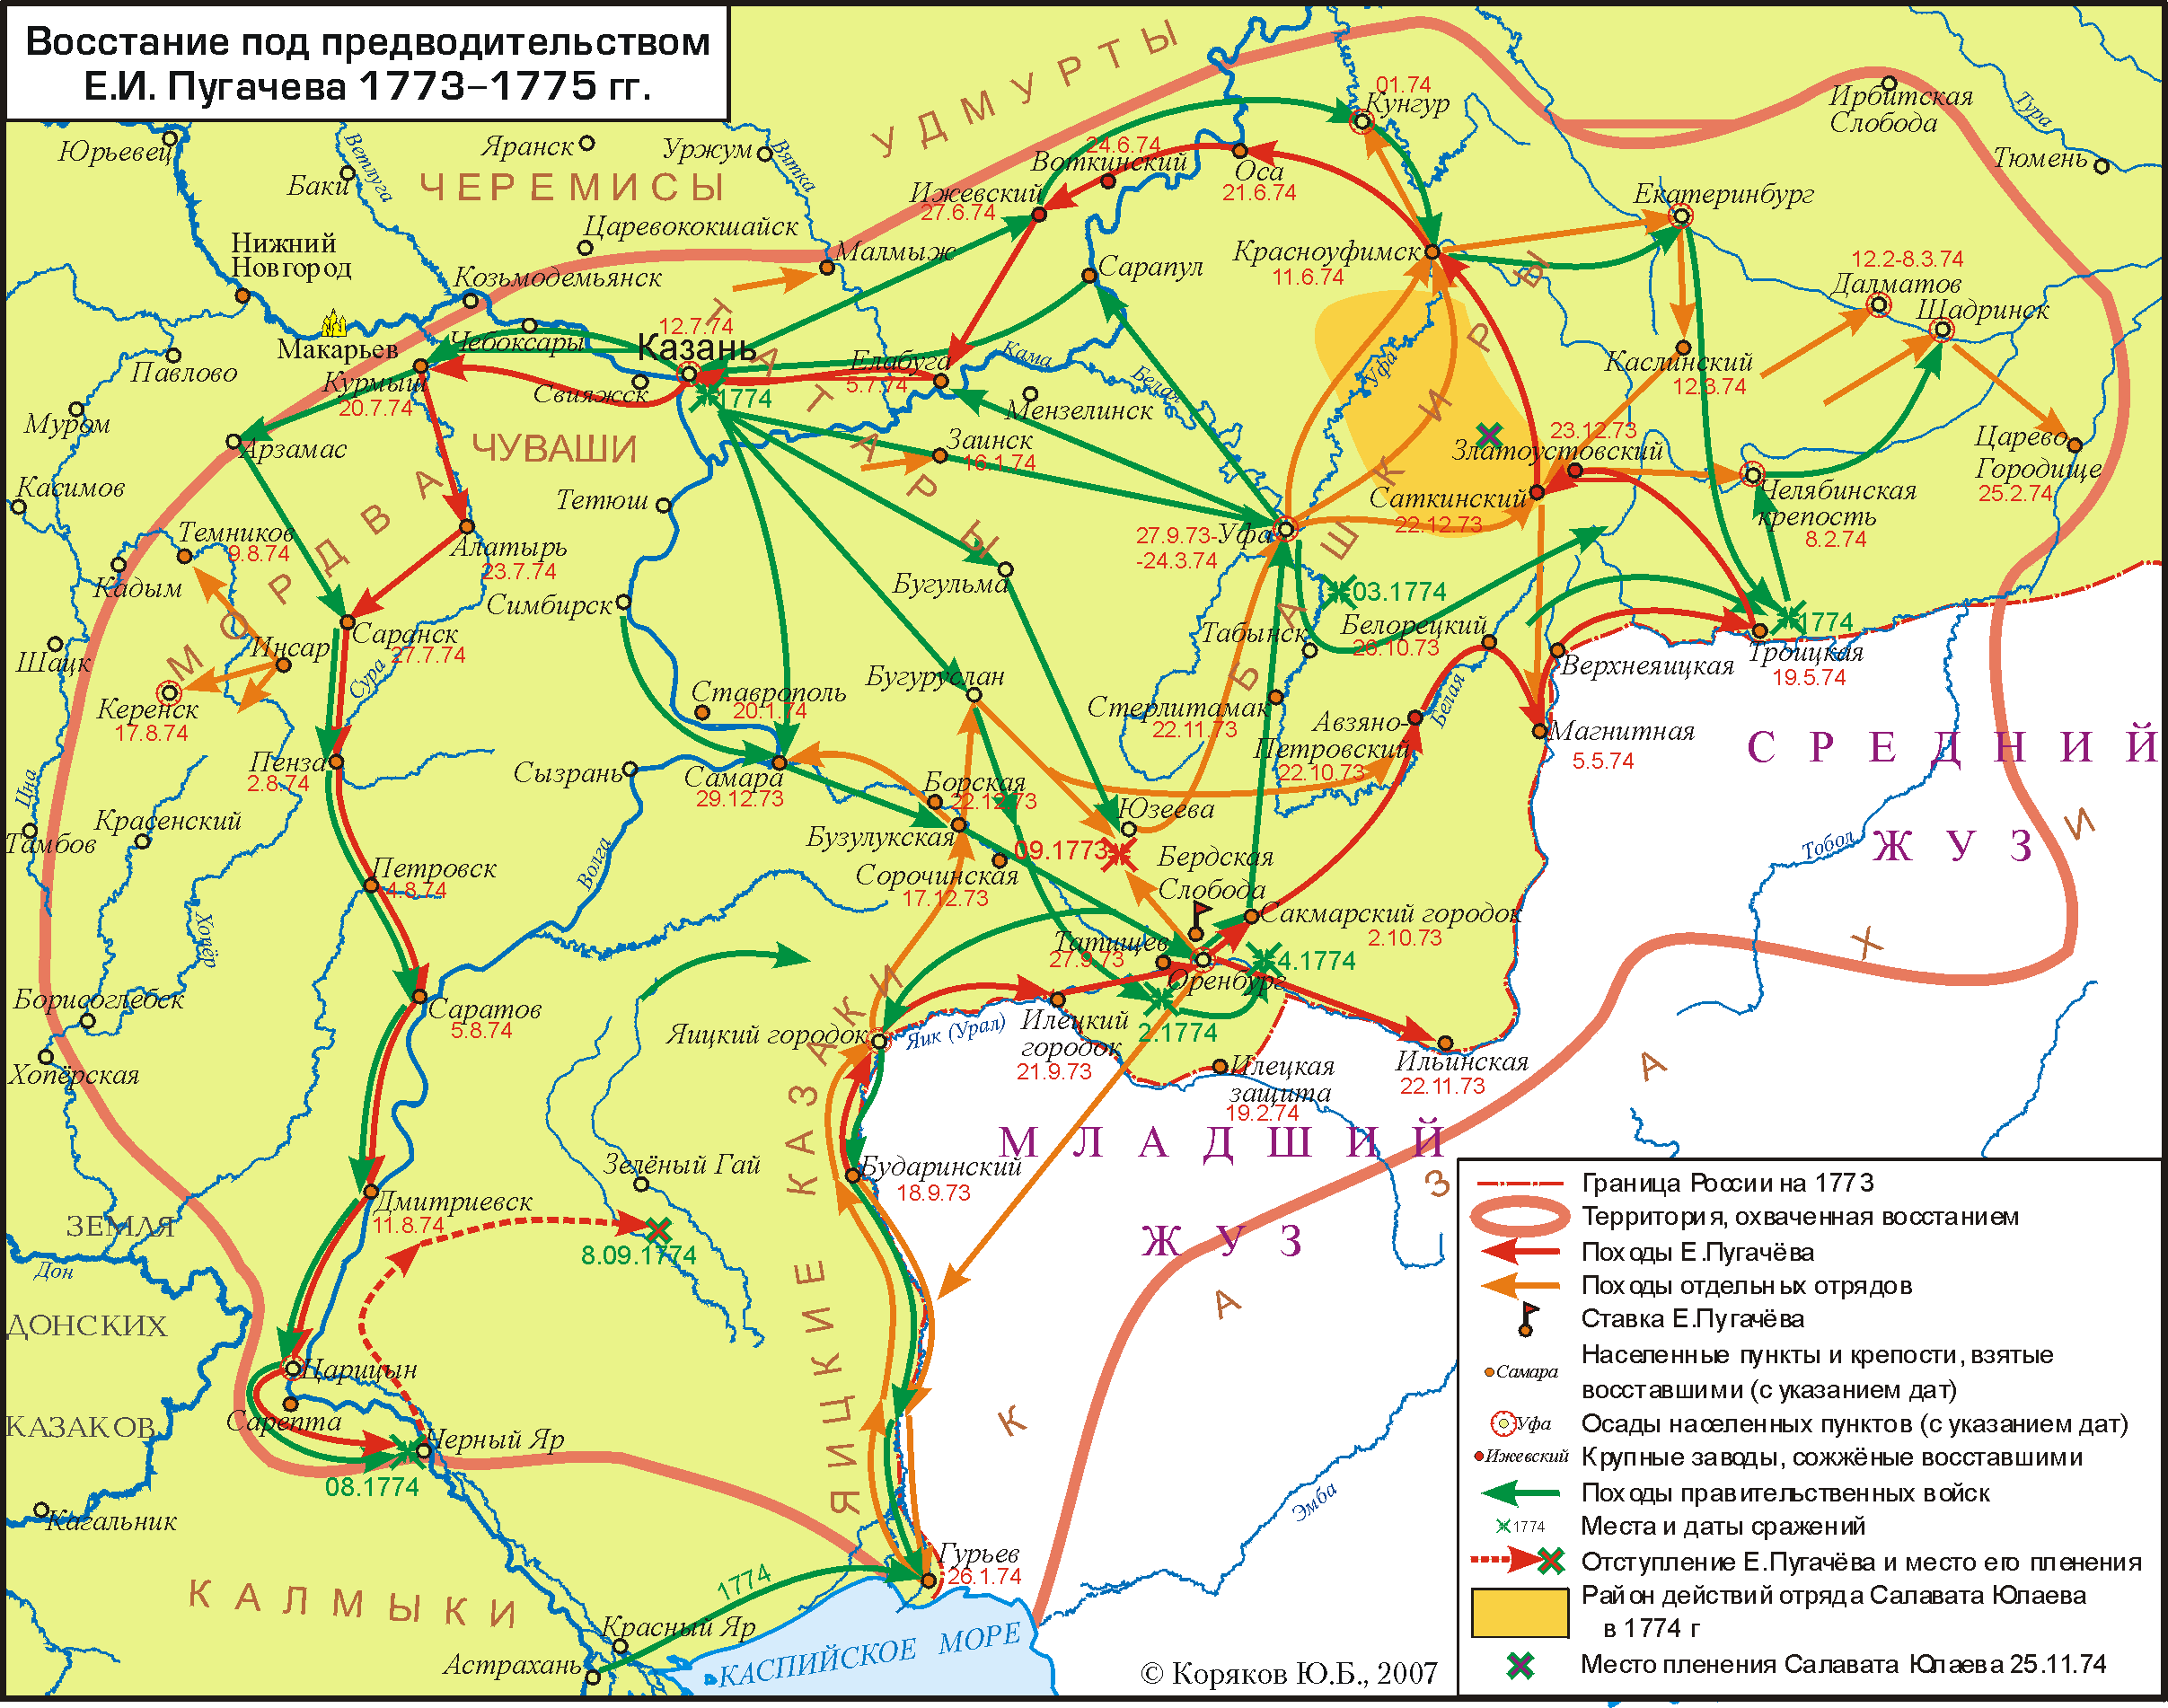 Map of Pugachev's rampage 1773-1775.